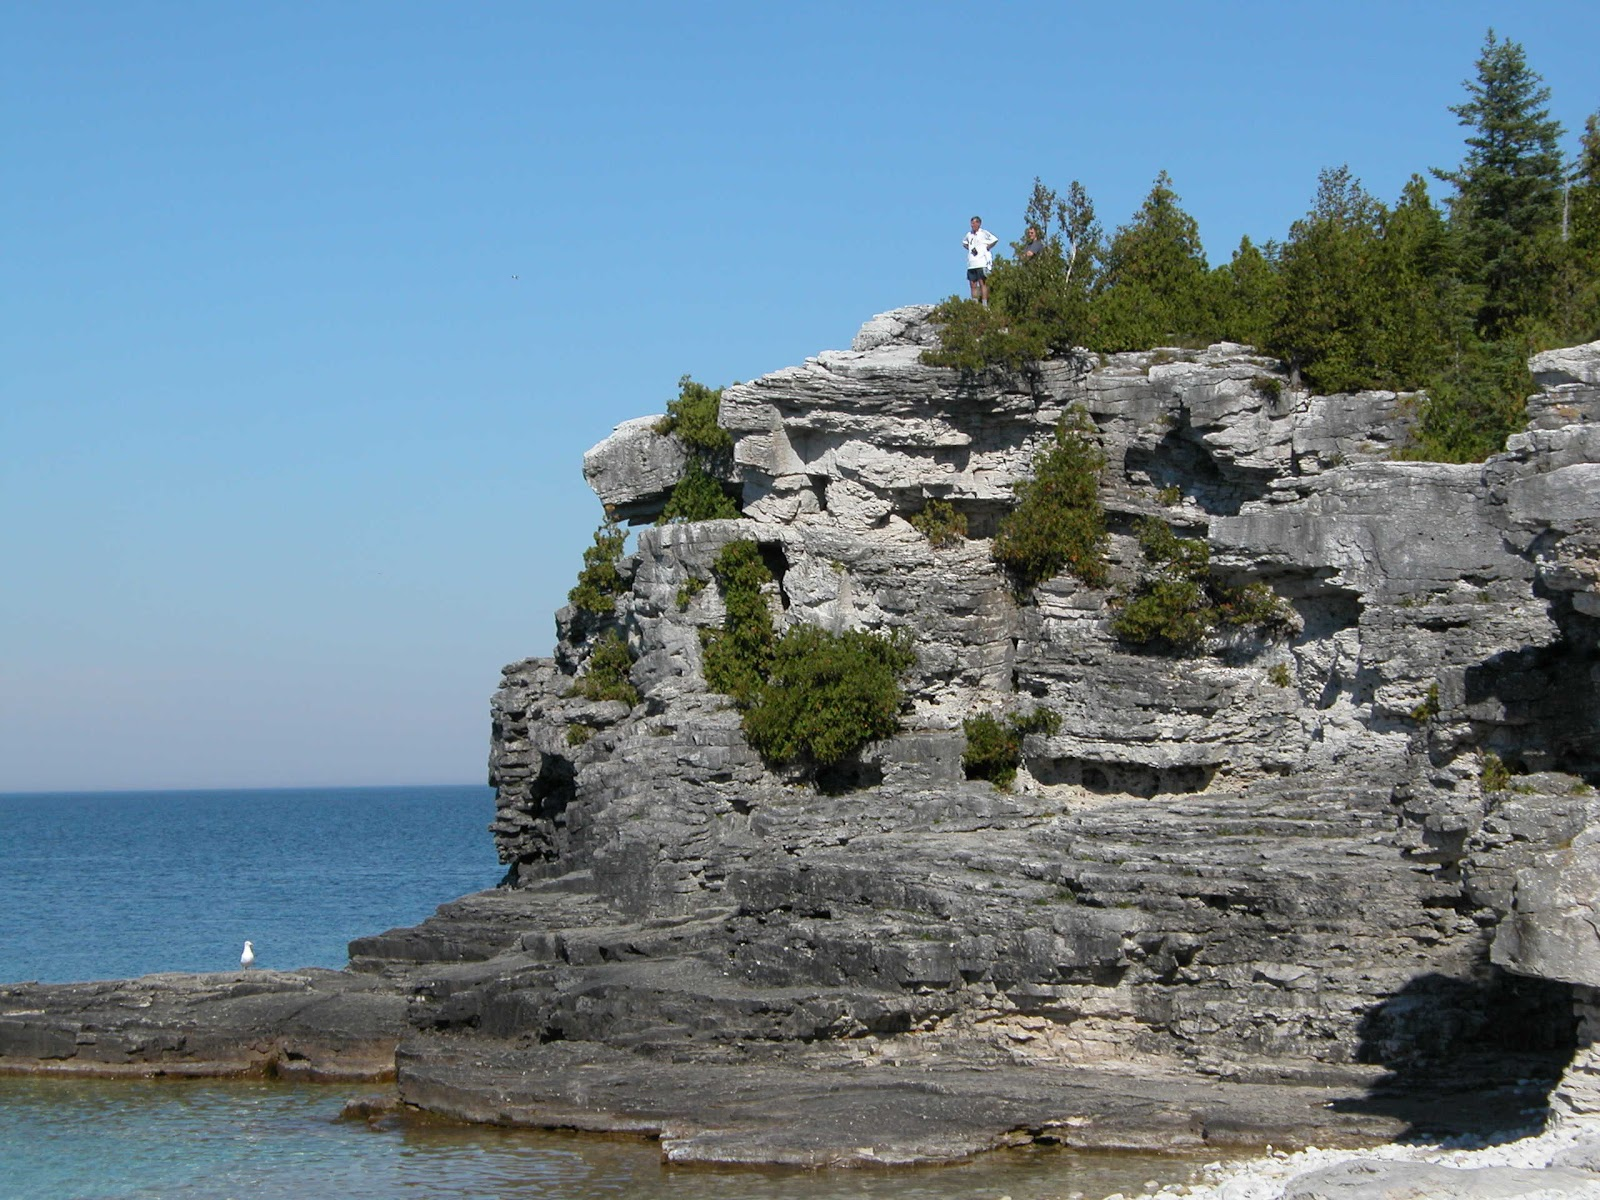 Escarpment_at_Bruce_Peninsula.jpg